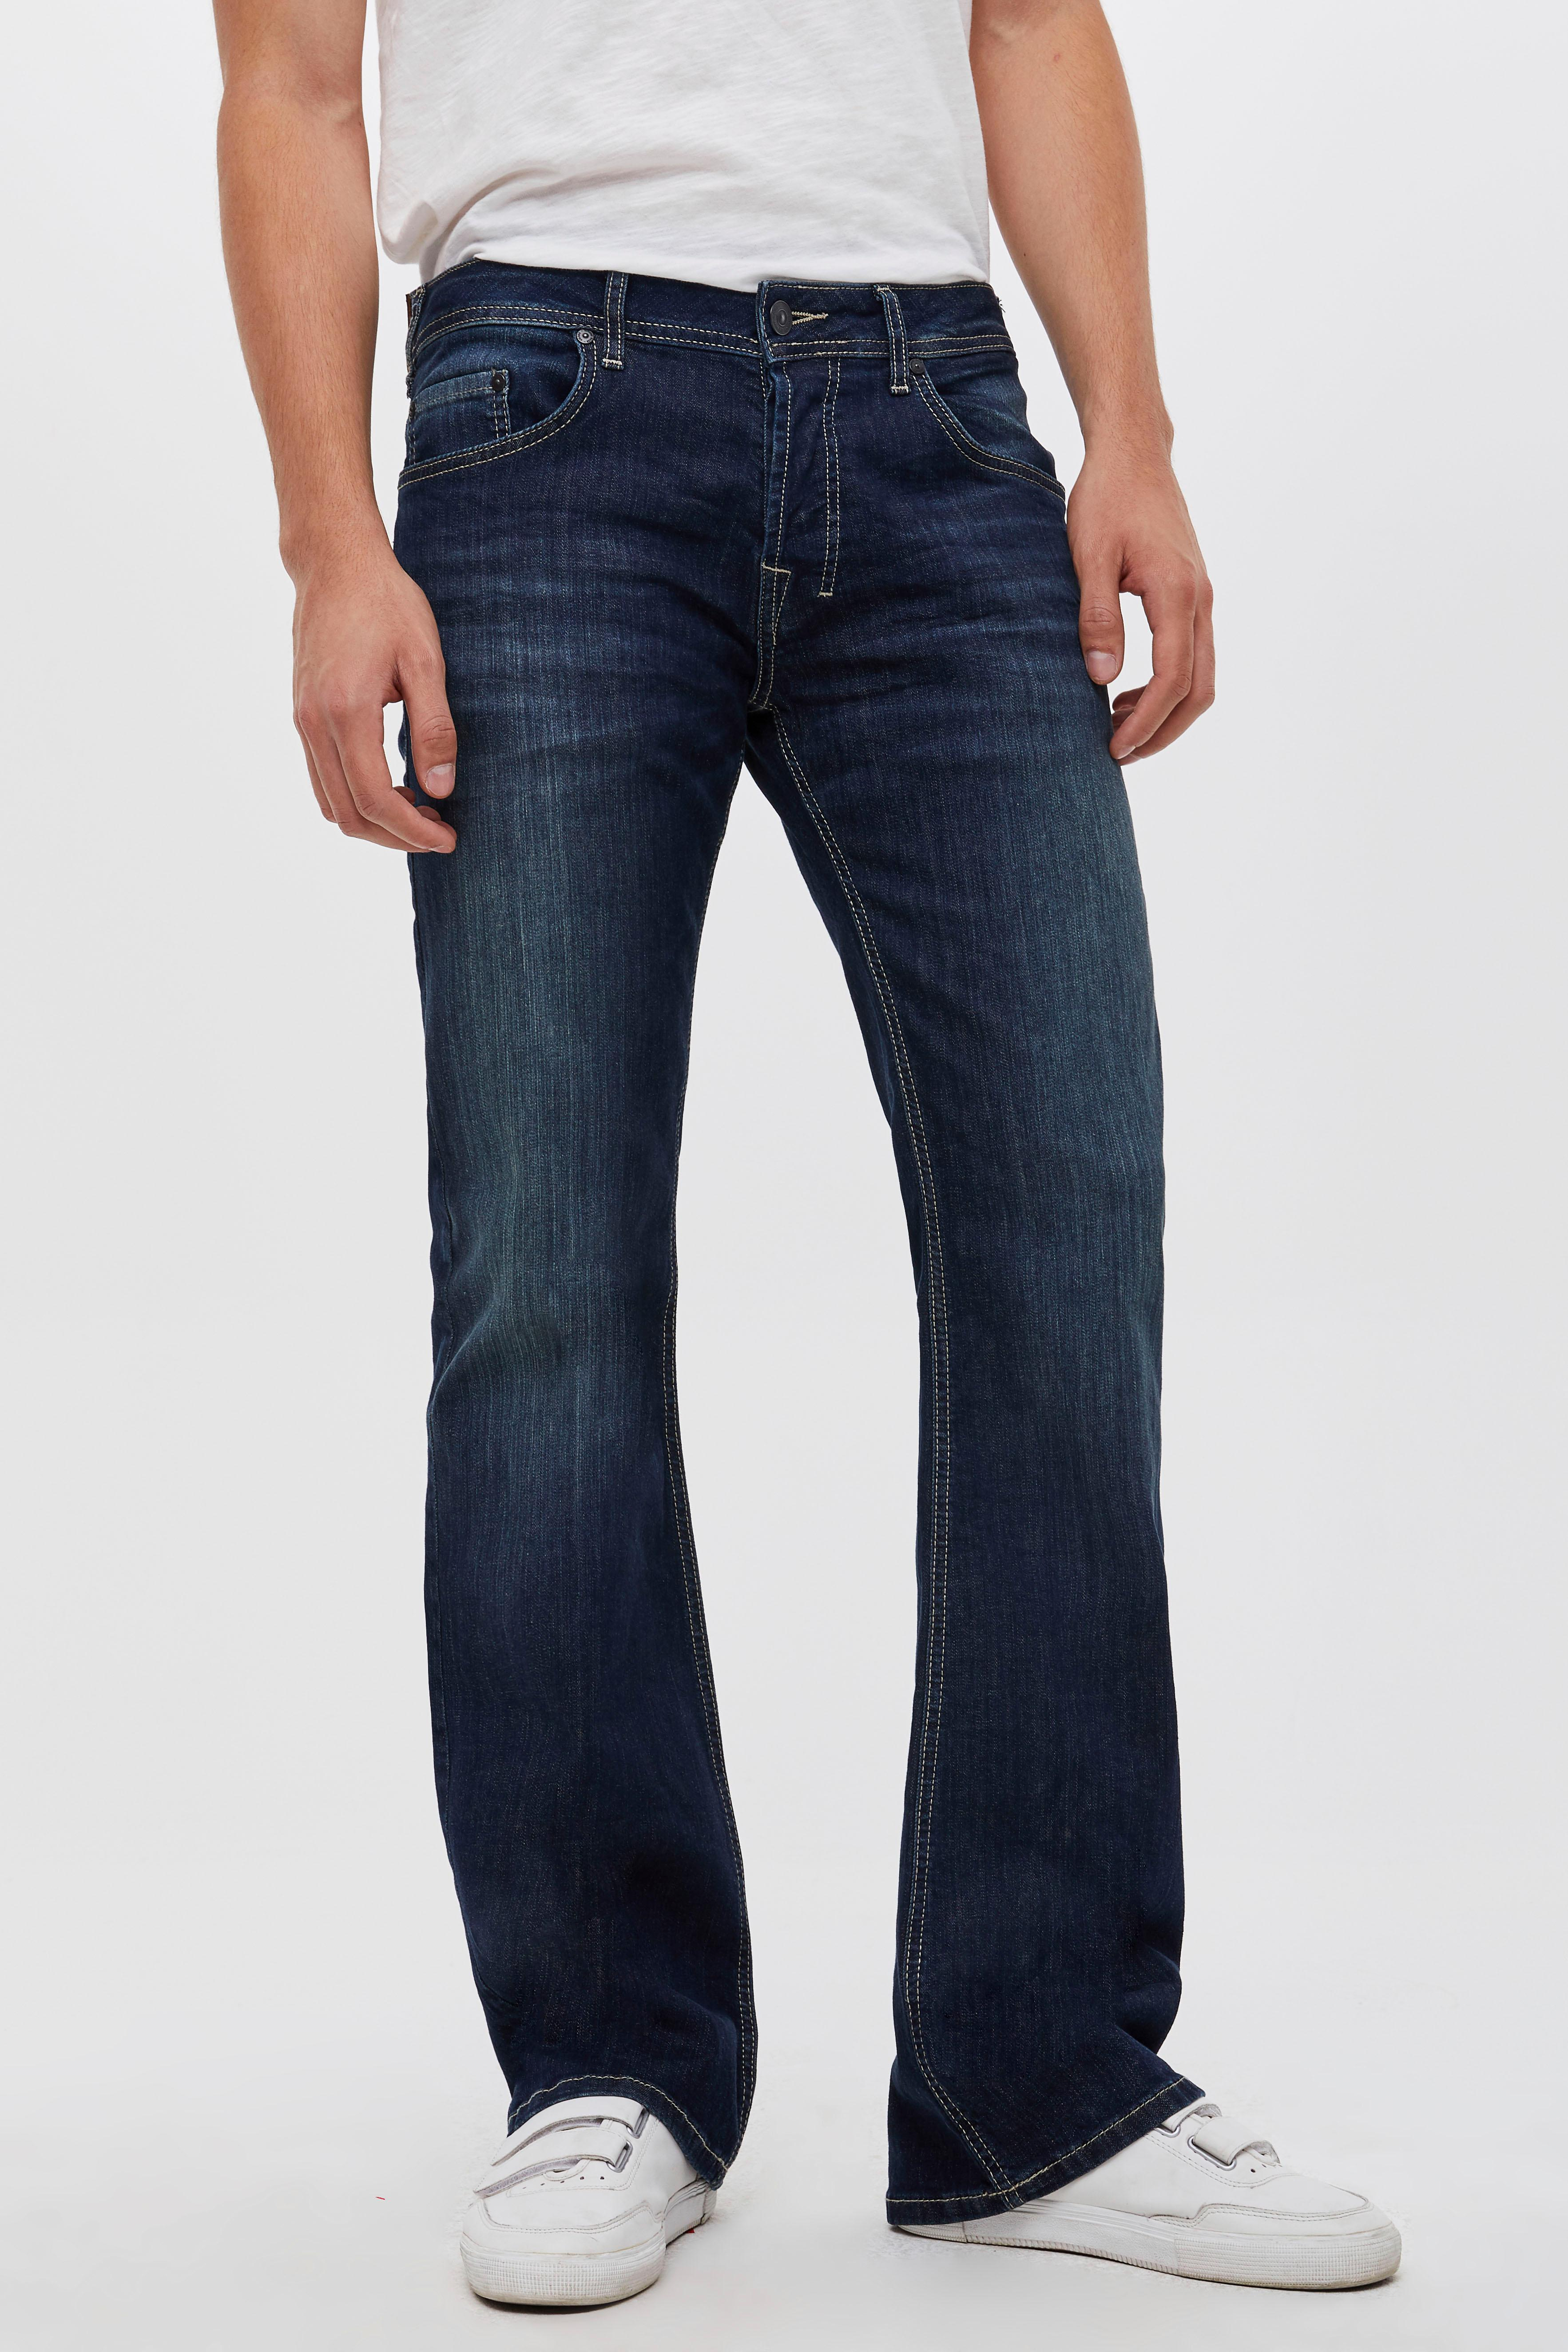 LTB Bootcut-Jeans TINMAN | Bekleidung > Jeans > Bootcut Jeans | Ltb